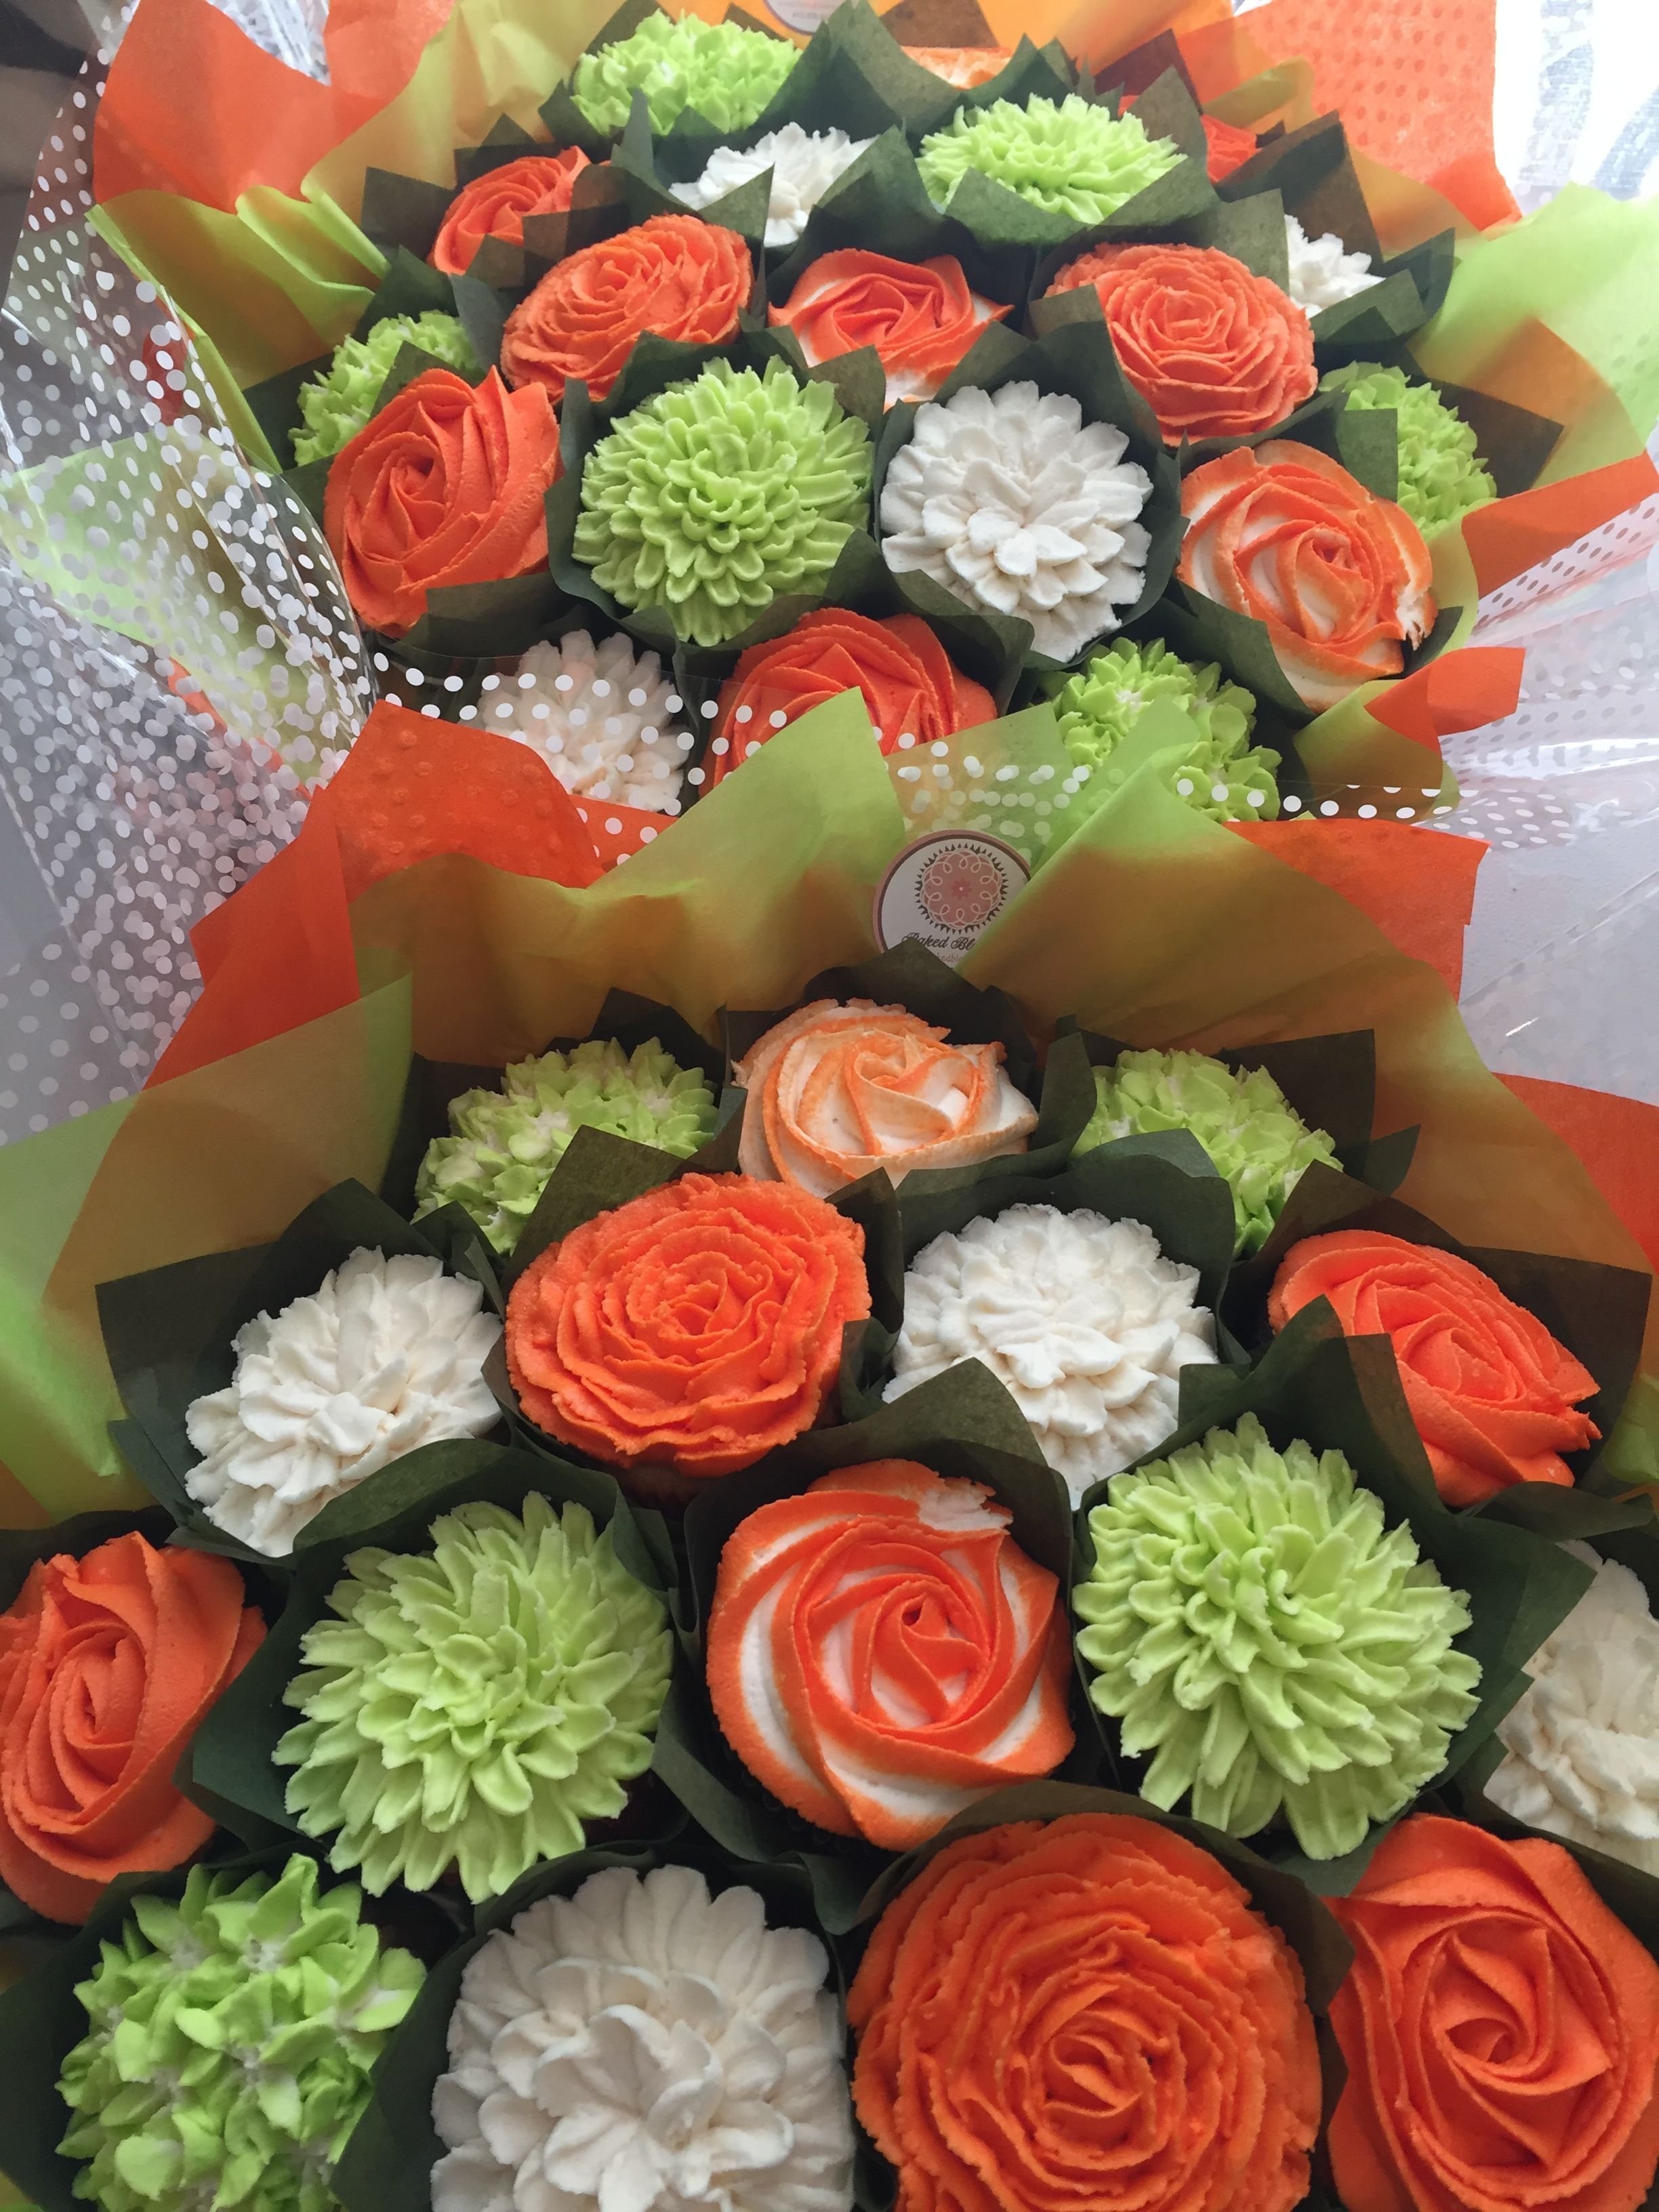 Matching Cupcake Bouquets For A Birthday Party Bakedblooms